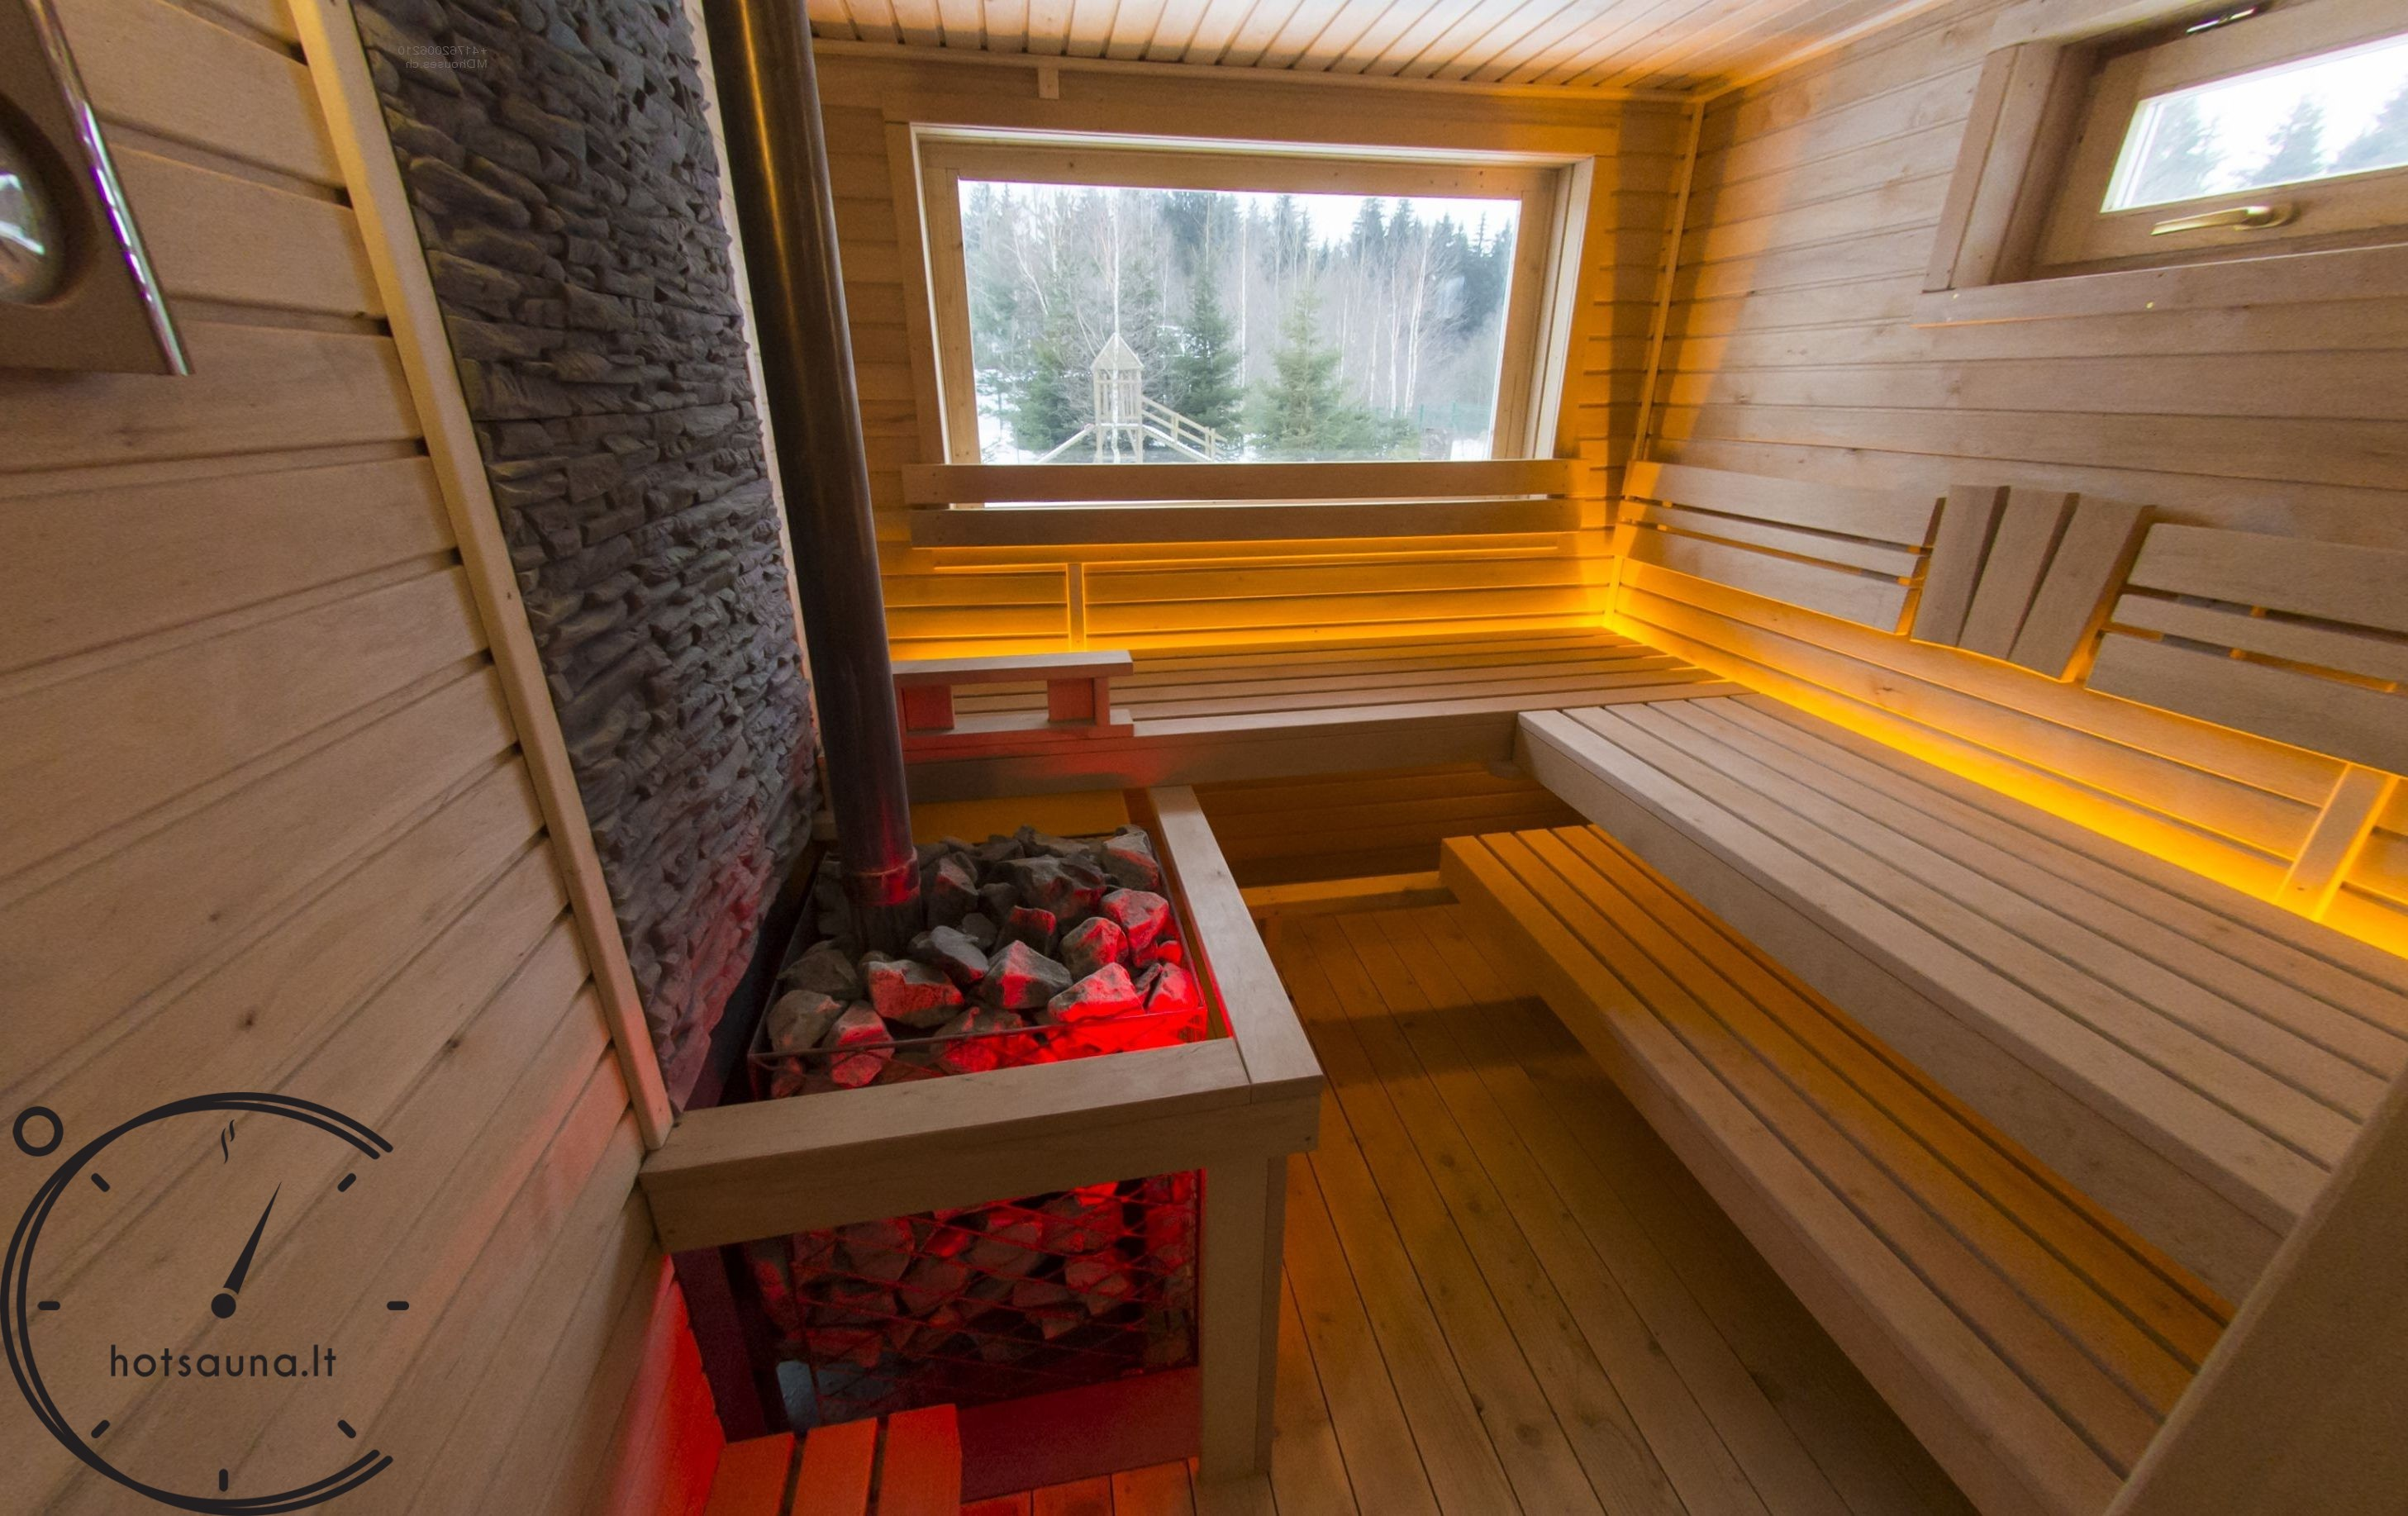 sauna instaliation works (13)